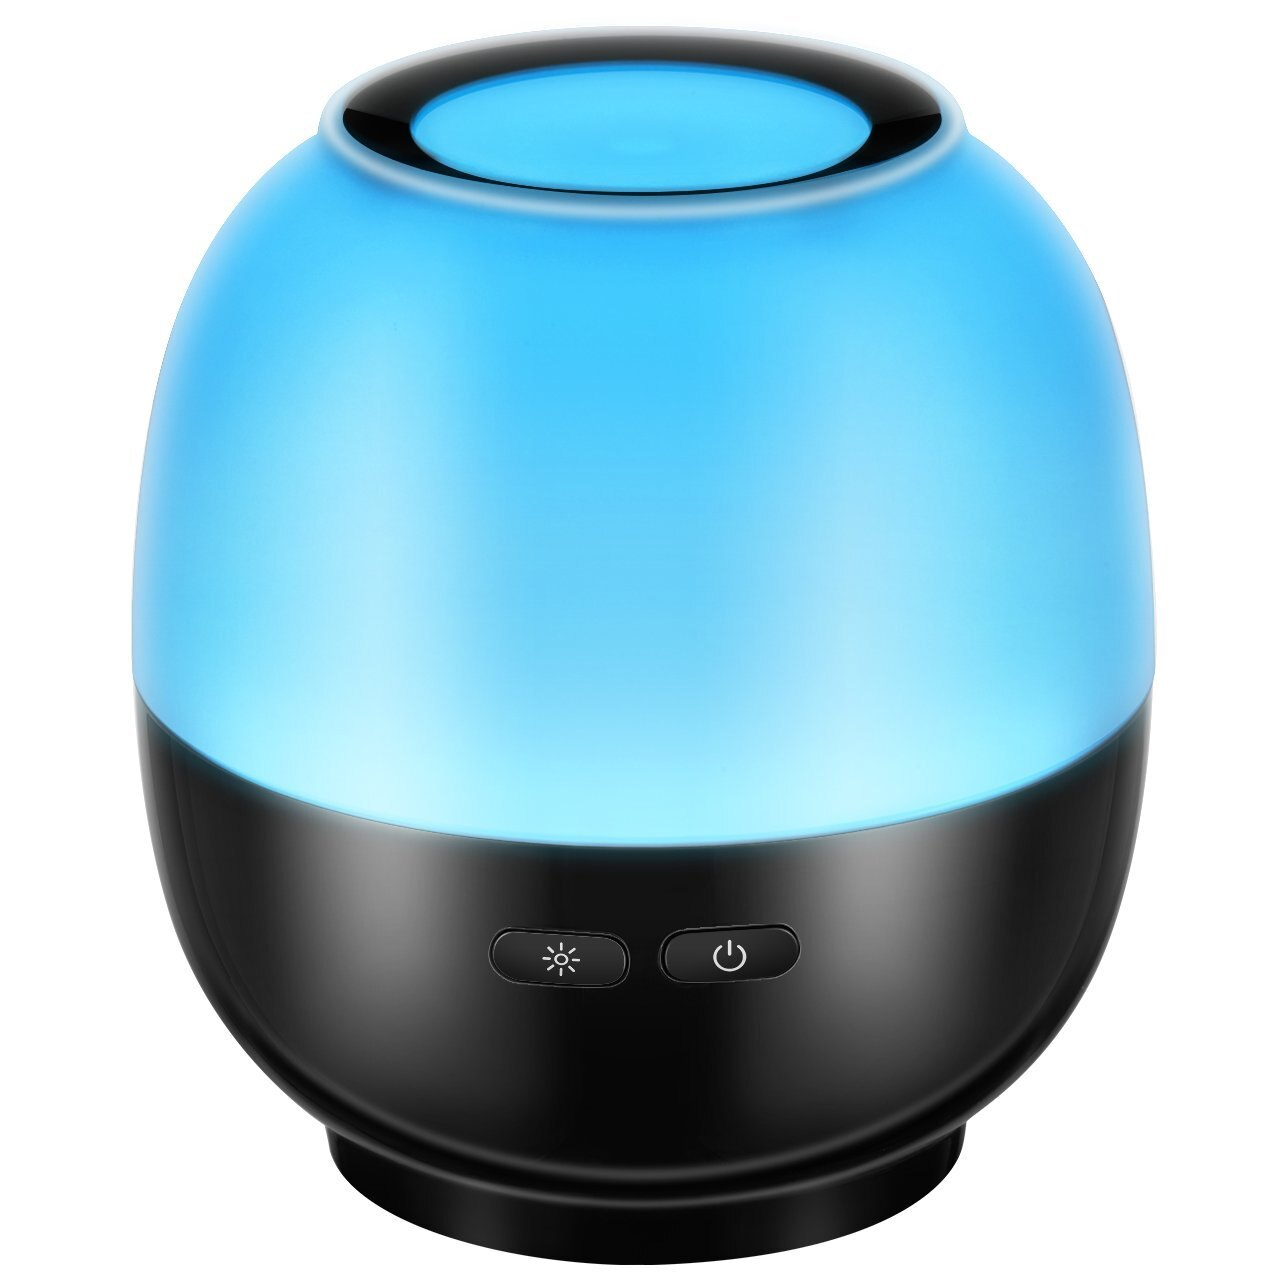 VicTsing Essential Oil Diffuser, 140ml Aroma Essential Oil Diffuser with 7-Color LED Light, Waterless Auto-Off Function, Whisper-Quiet Operation, Suits for Home, Yoga, Office, Spa, Bedroom, Baby Room 0